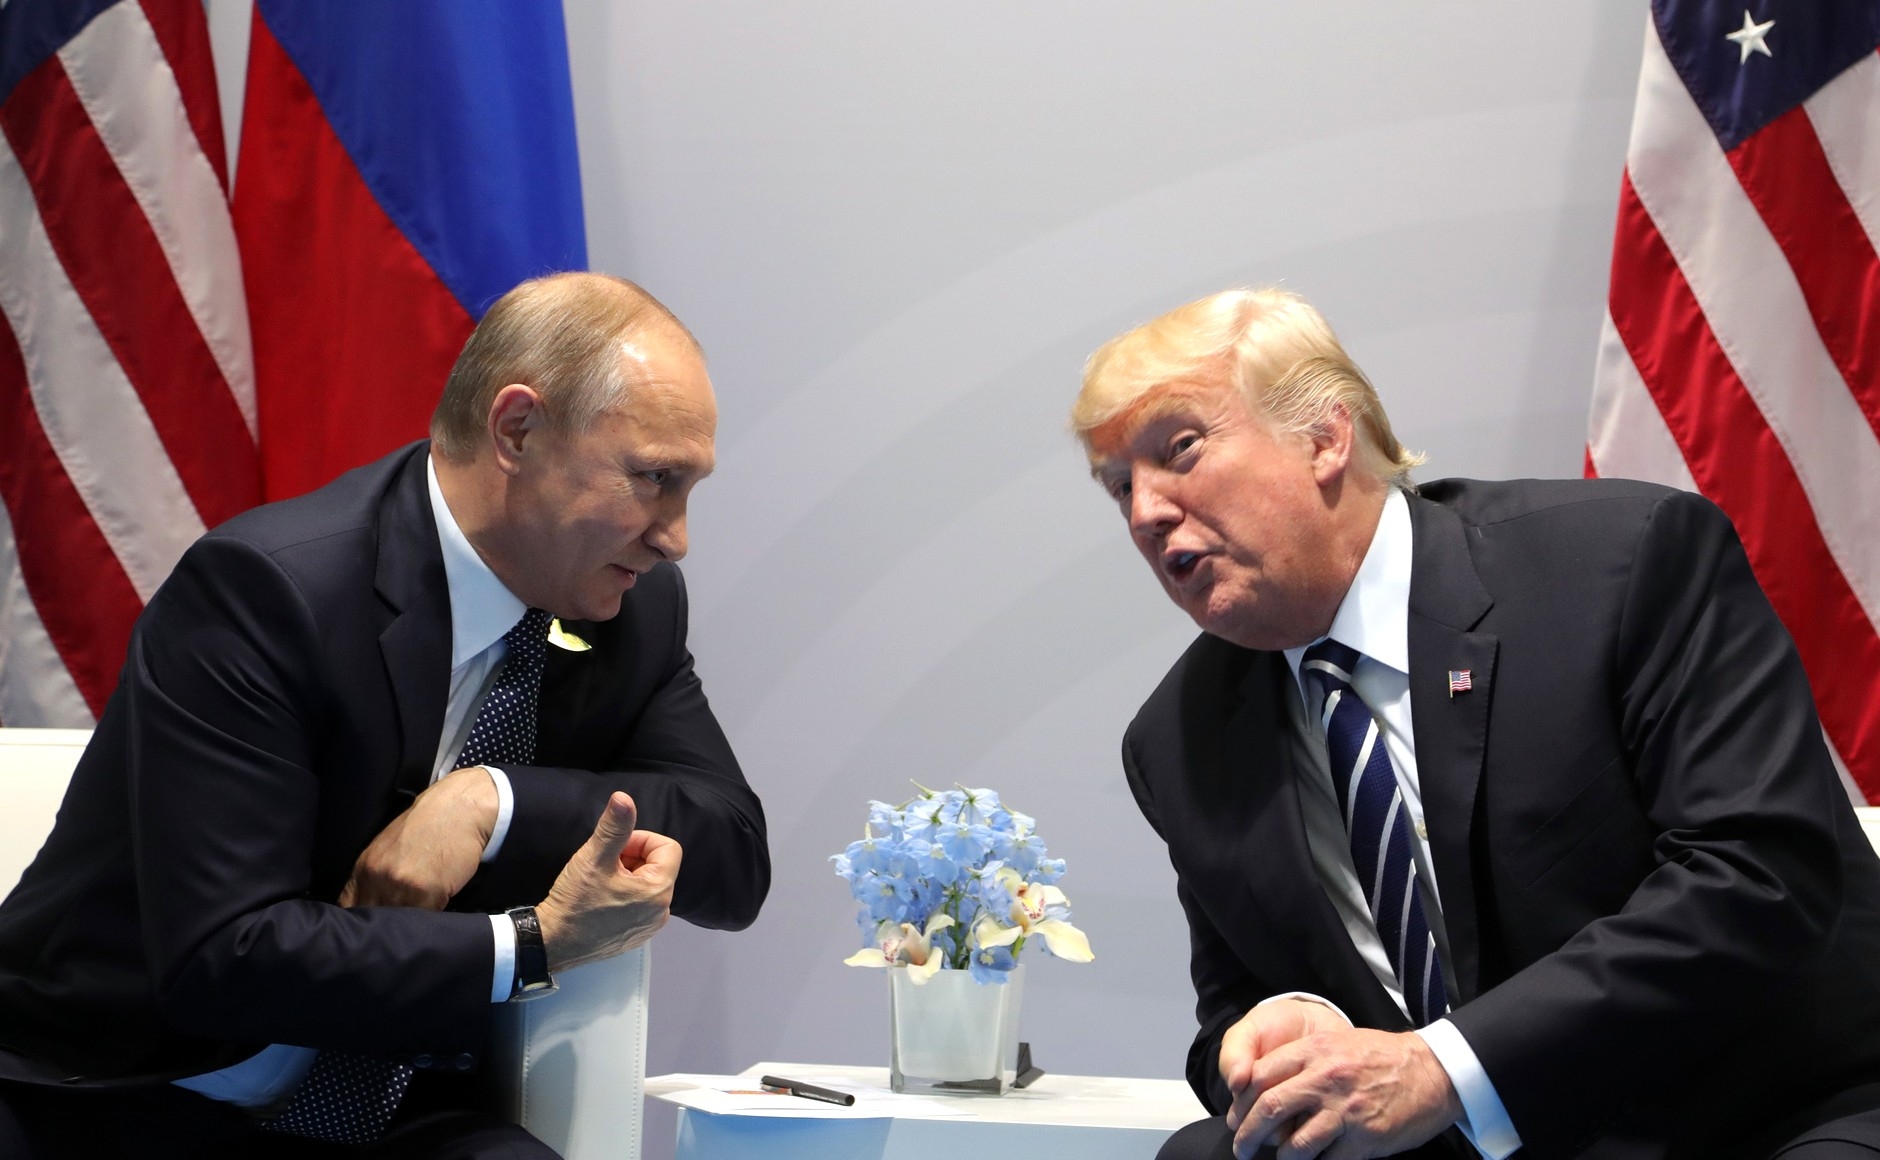 Vladimir_Putin_and_Donald_Trump_at_the_2017_G-20_Hamburg_Summit_(4).jpg